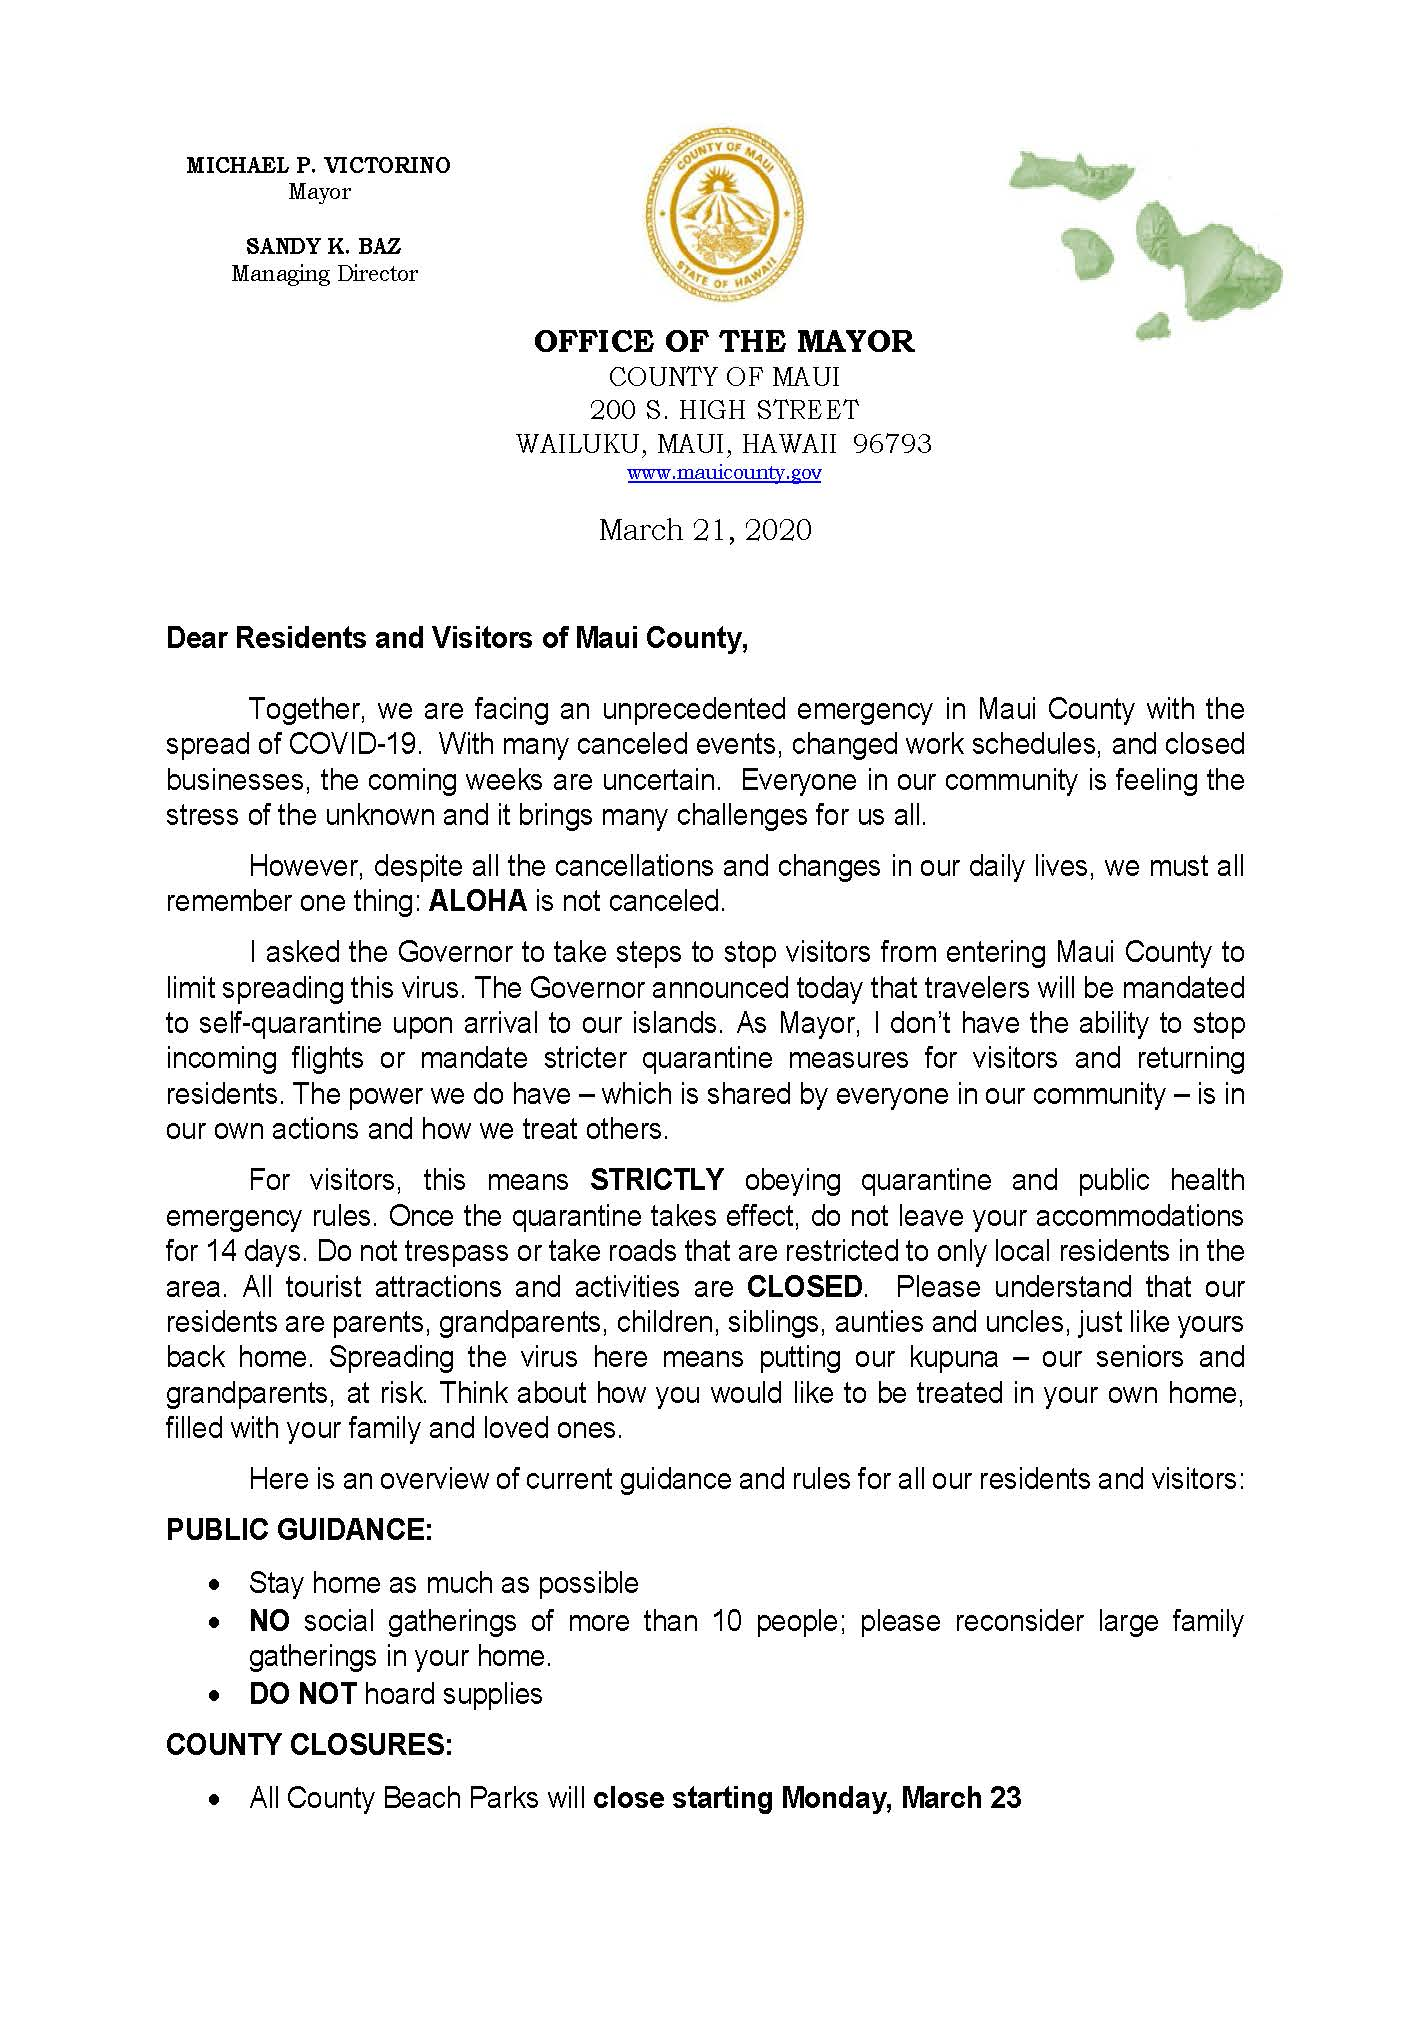 Dear Residents and Visitors of Maui County 3.20.20_Page_1